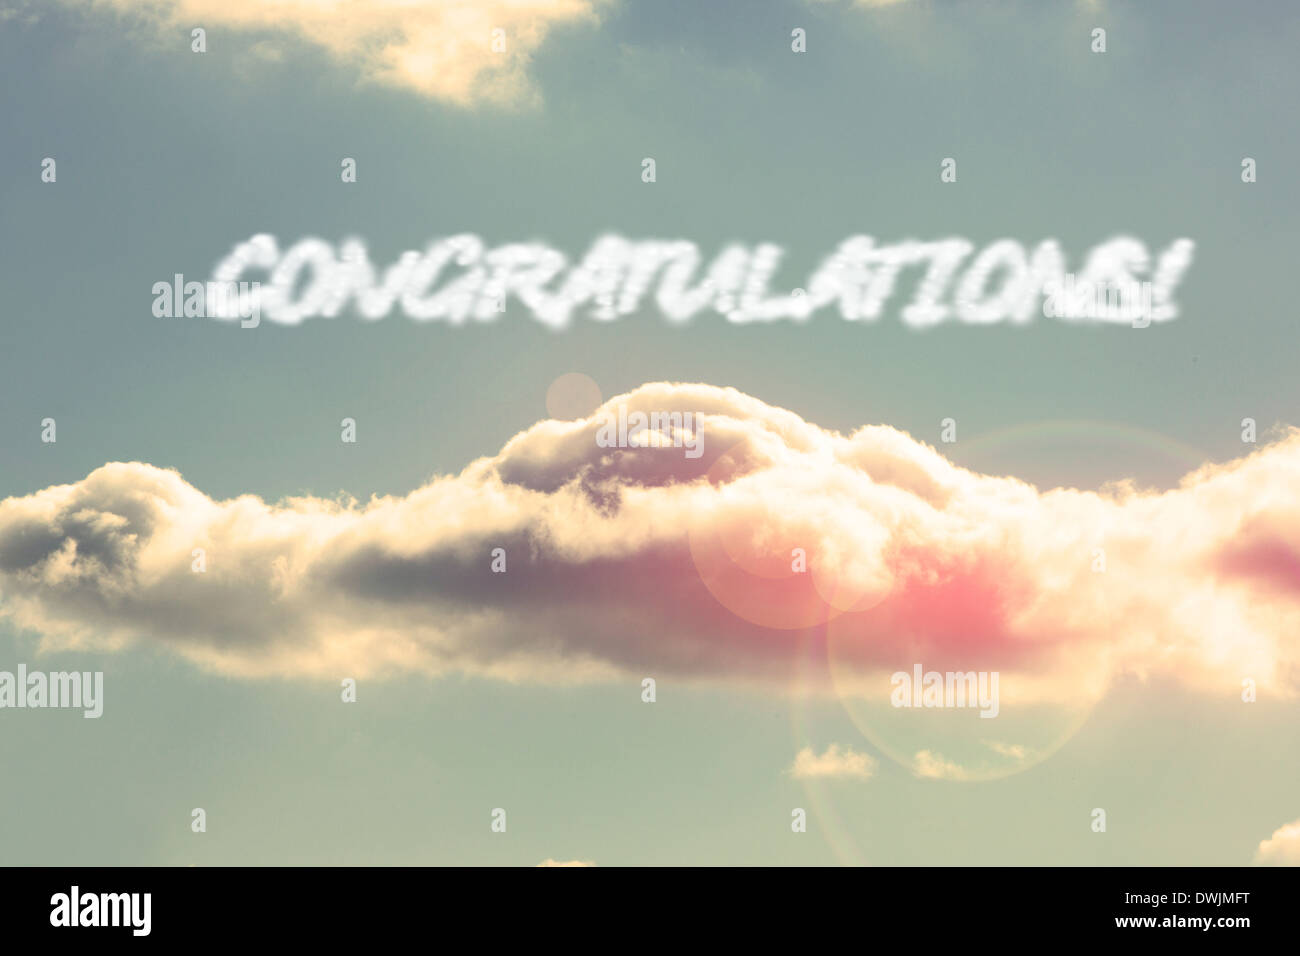 Congratulations! against bright blue sky with cloud - Stock Image